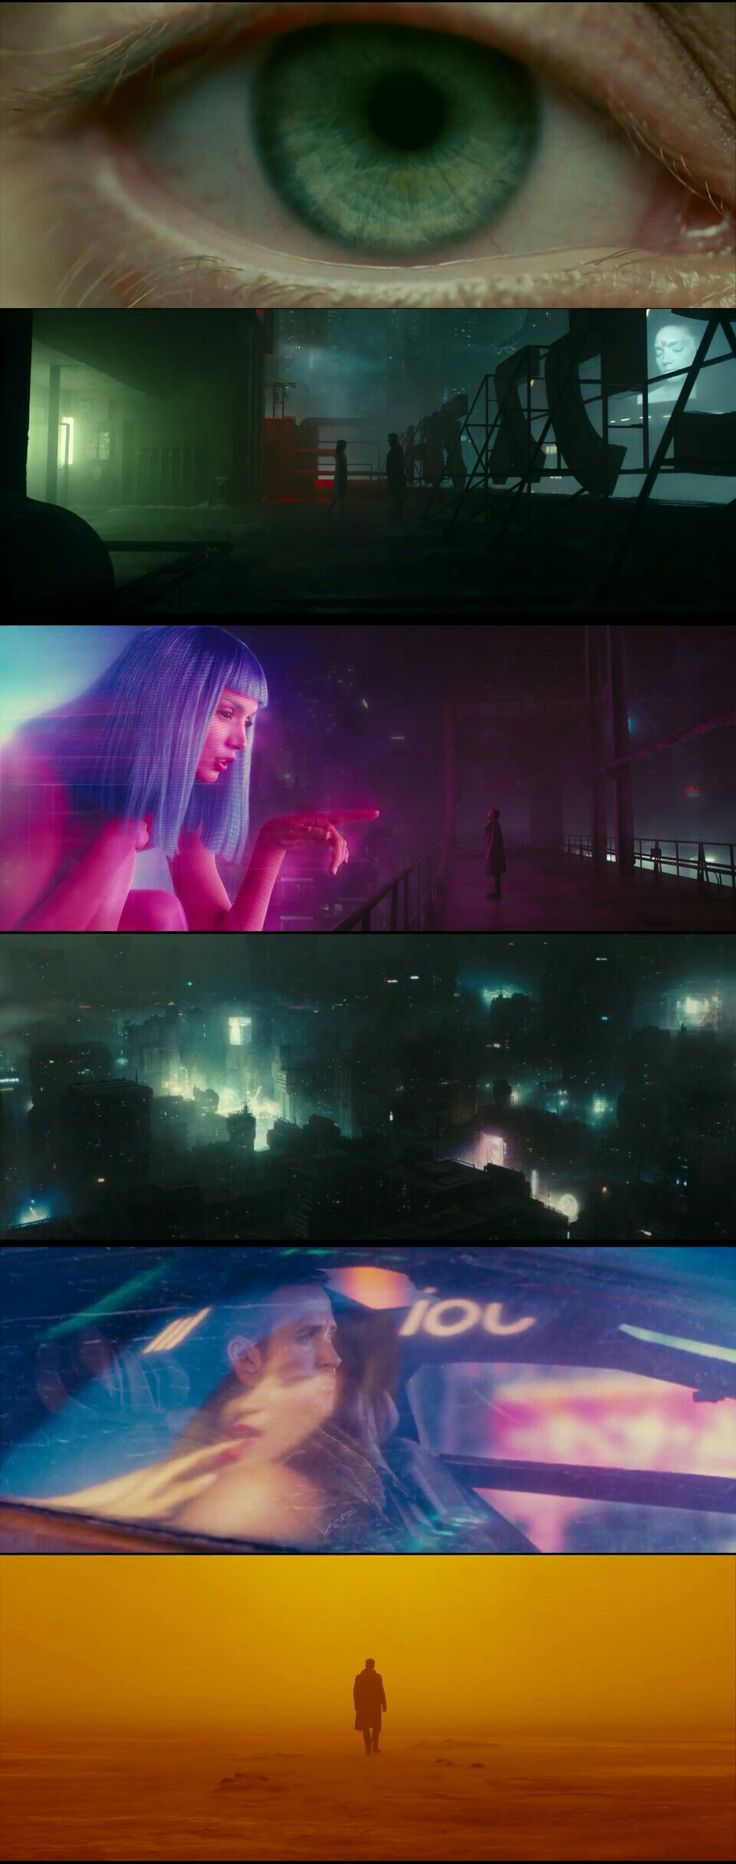 Blade Runner 2049 can be one of this year the most visually stunning film. Production Design, Visual Effect and Cinematogrphy of film in trailer is pretty awesome.